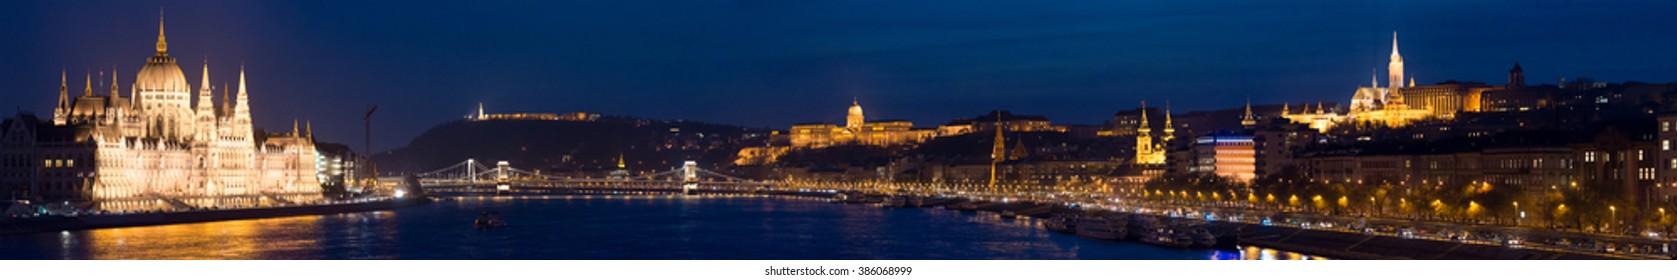 Night panorama of Budapest city. Parliament building on left, Buda castle hill on right and chain bridge in middle. Hungary, Europe travel.